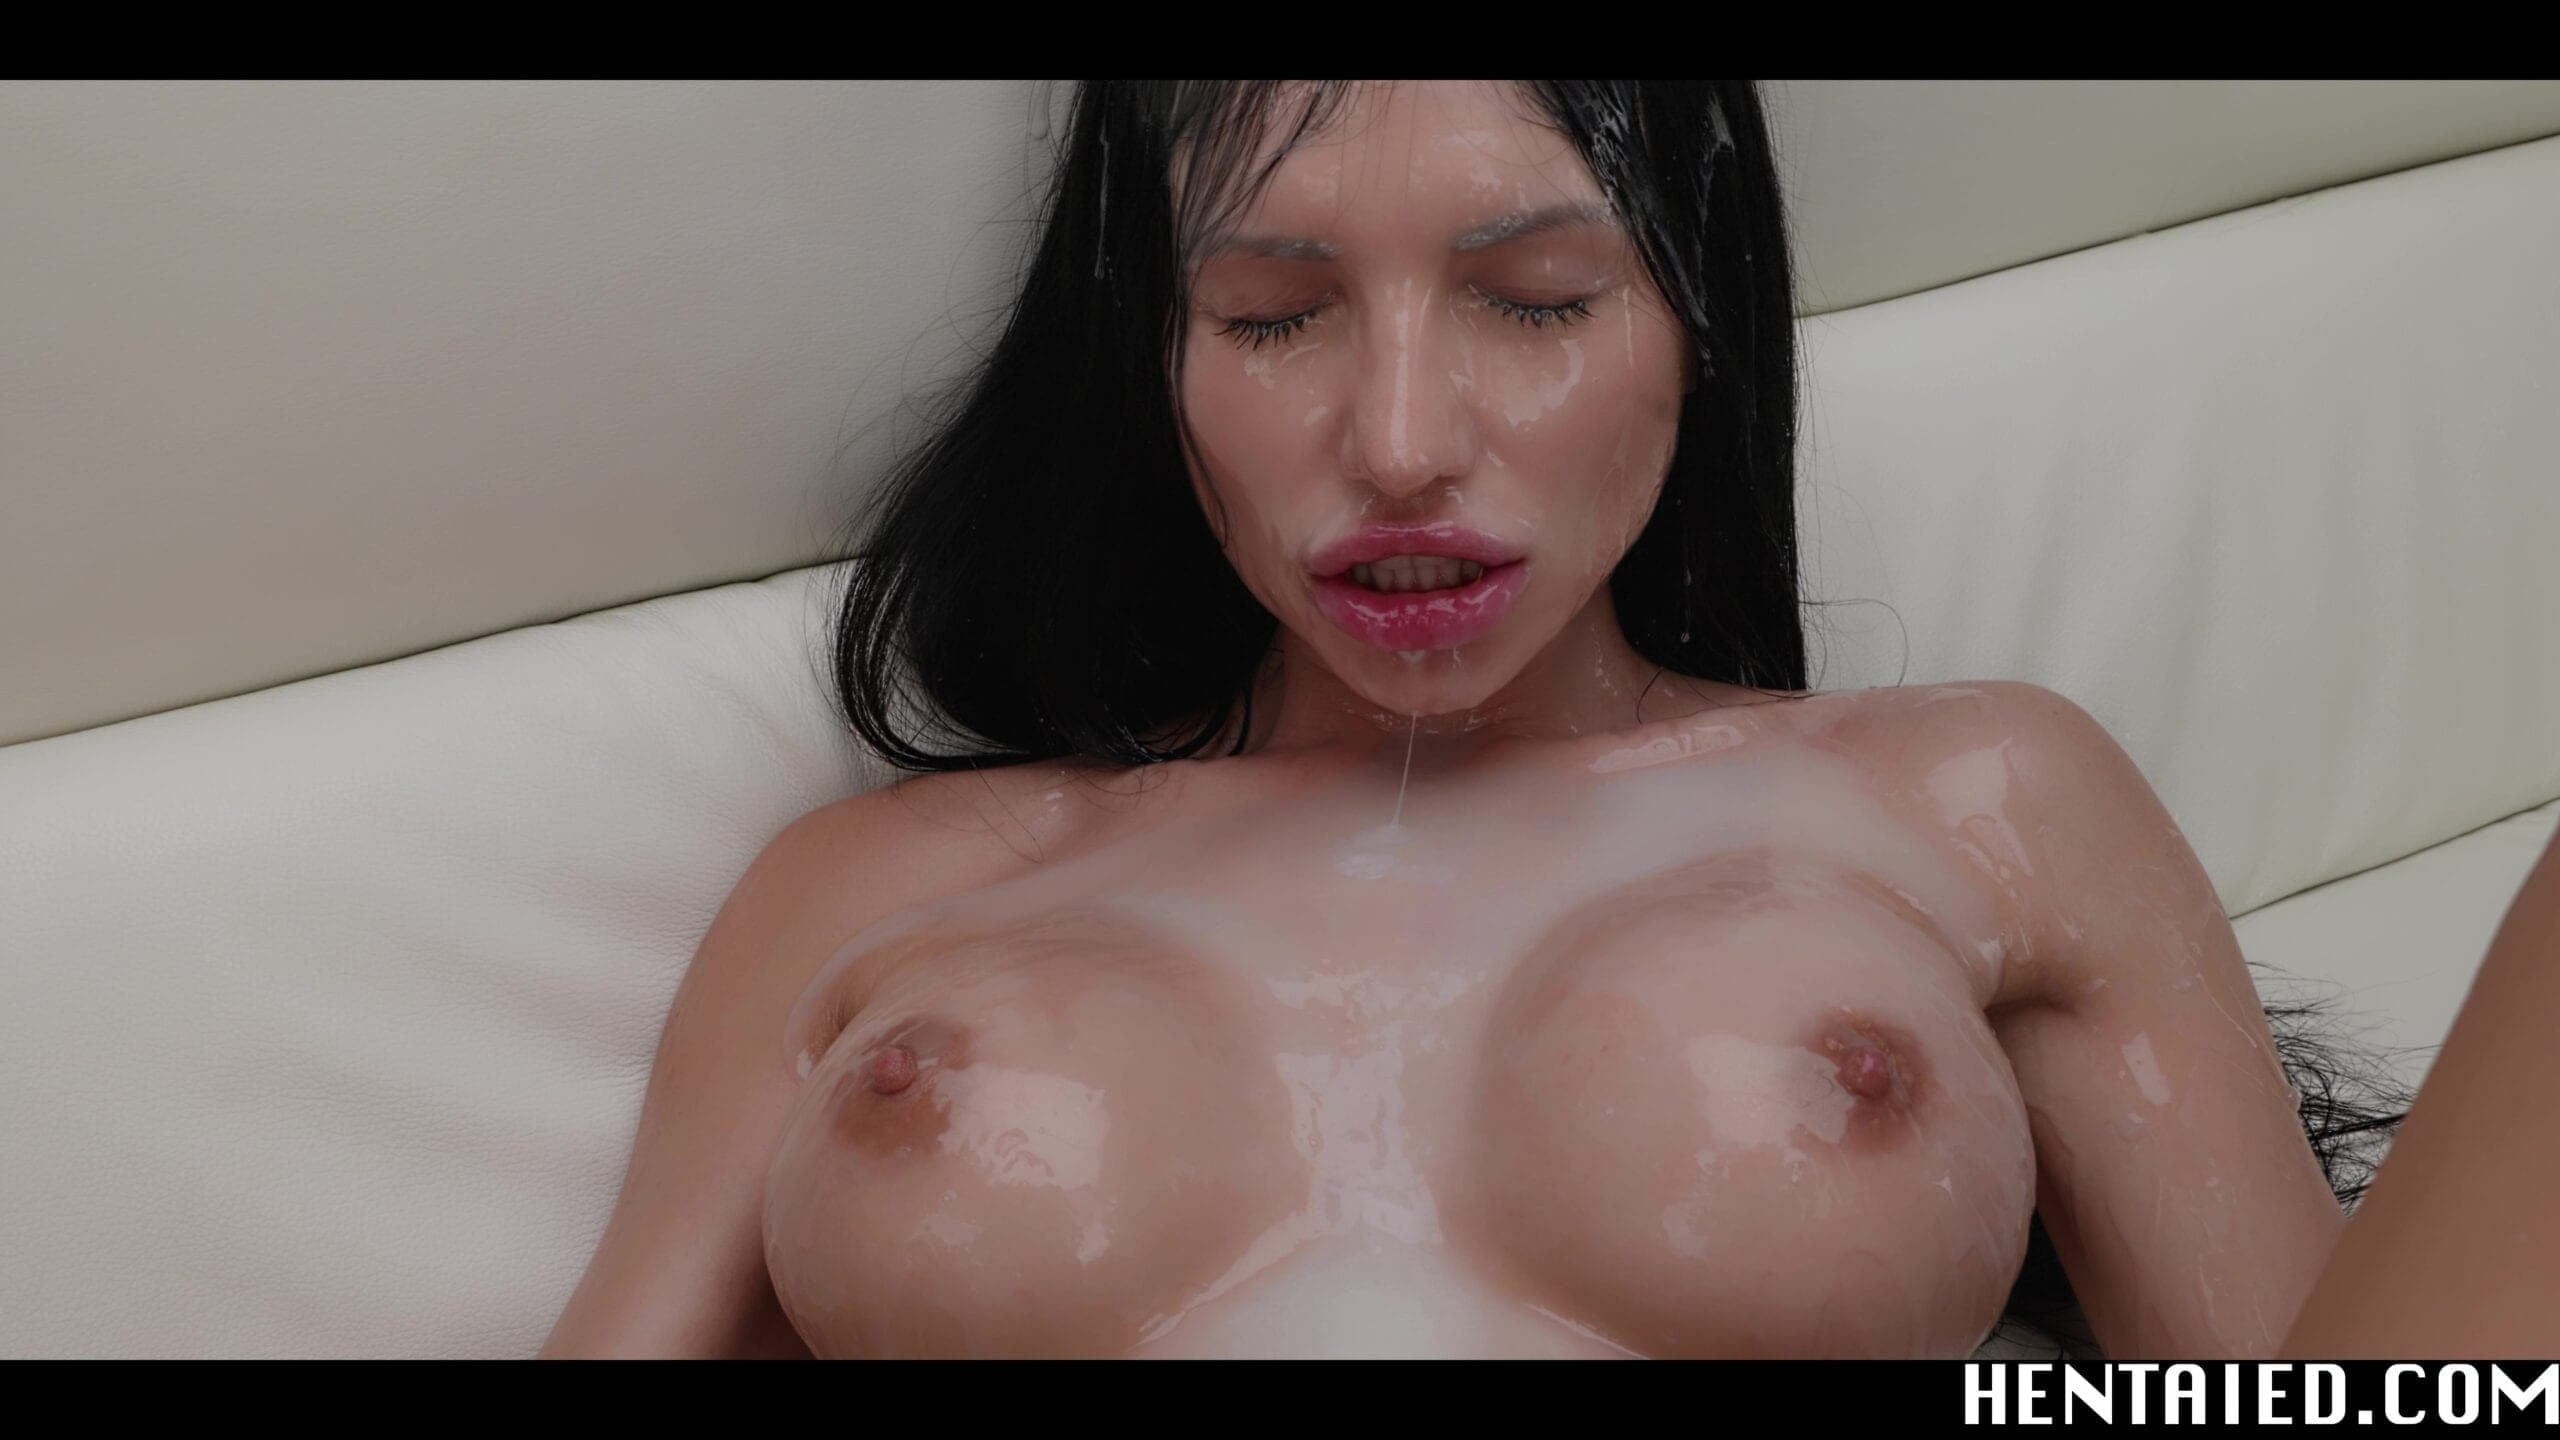 sasha rose bukkake huge boobs